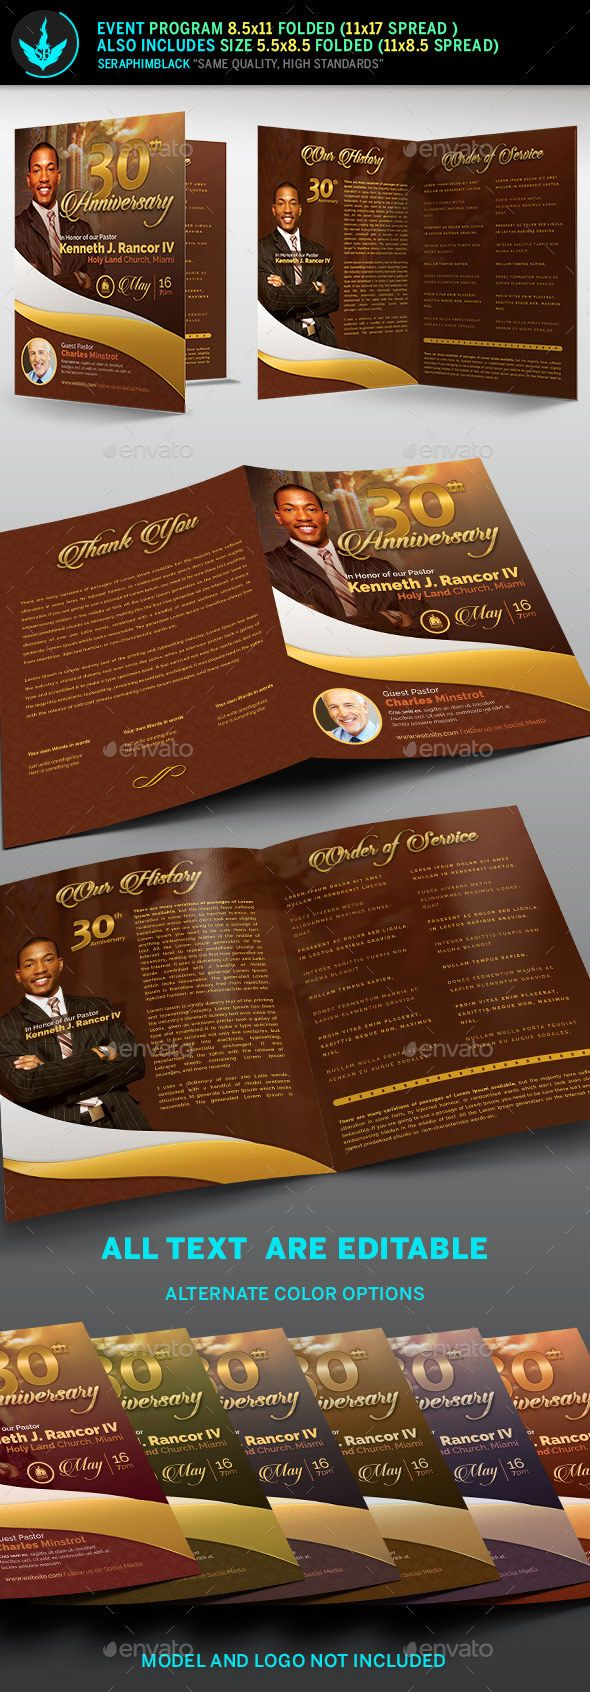 Pastor's Anniversary Program Template - #Informational #Brochures Download here: https://graphicriver.net/item/pastors-anniversary-program-template/18286515?ref=alena994